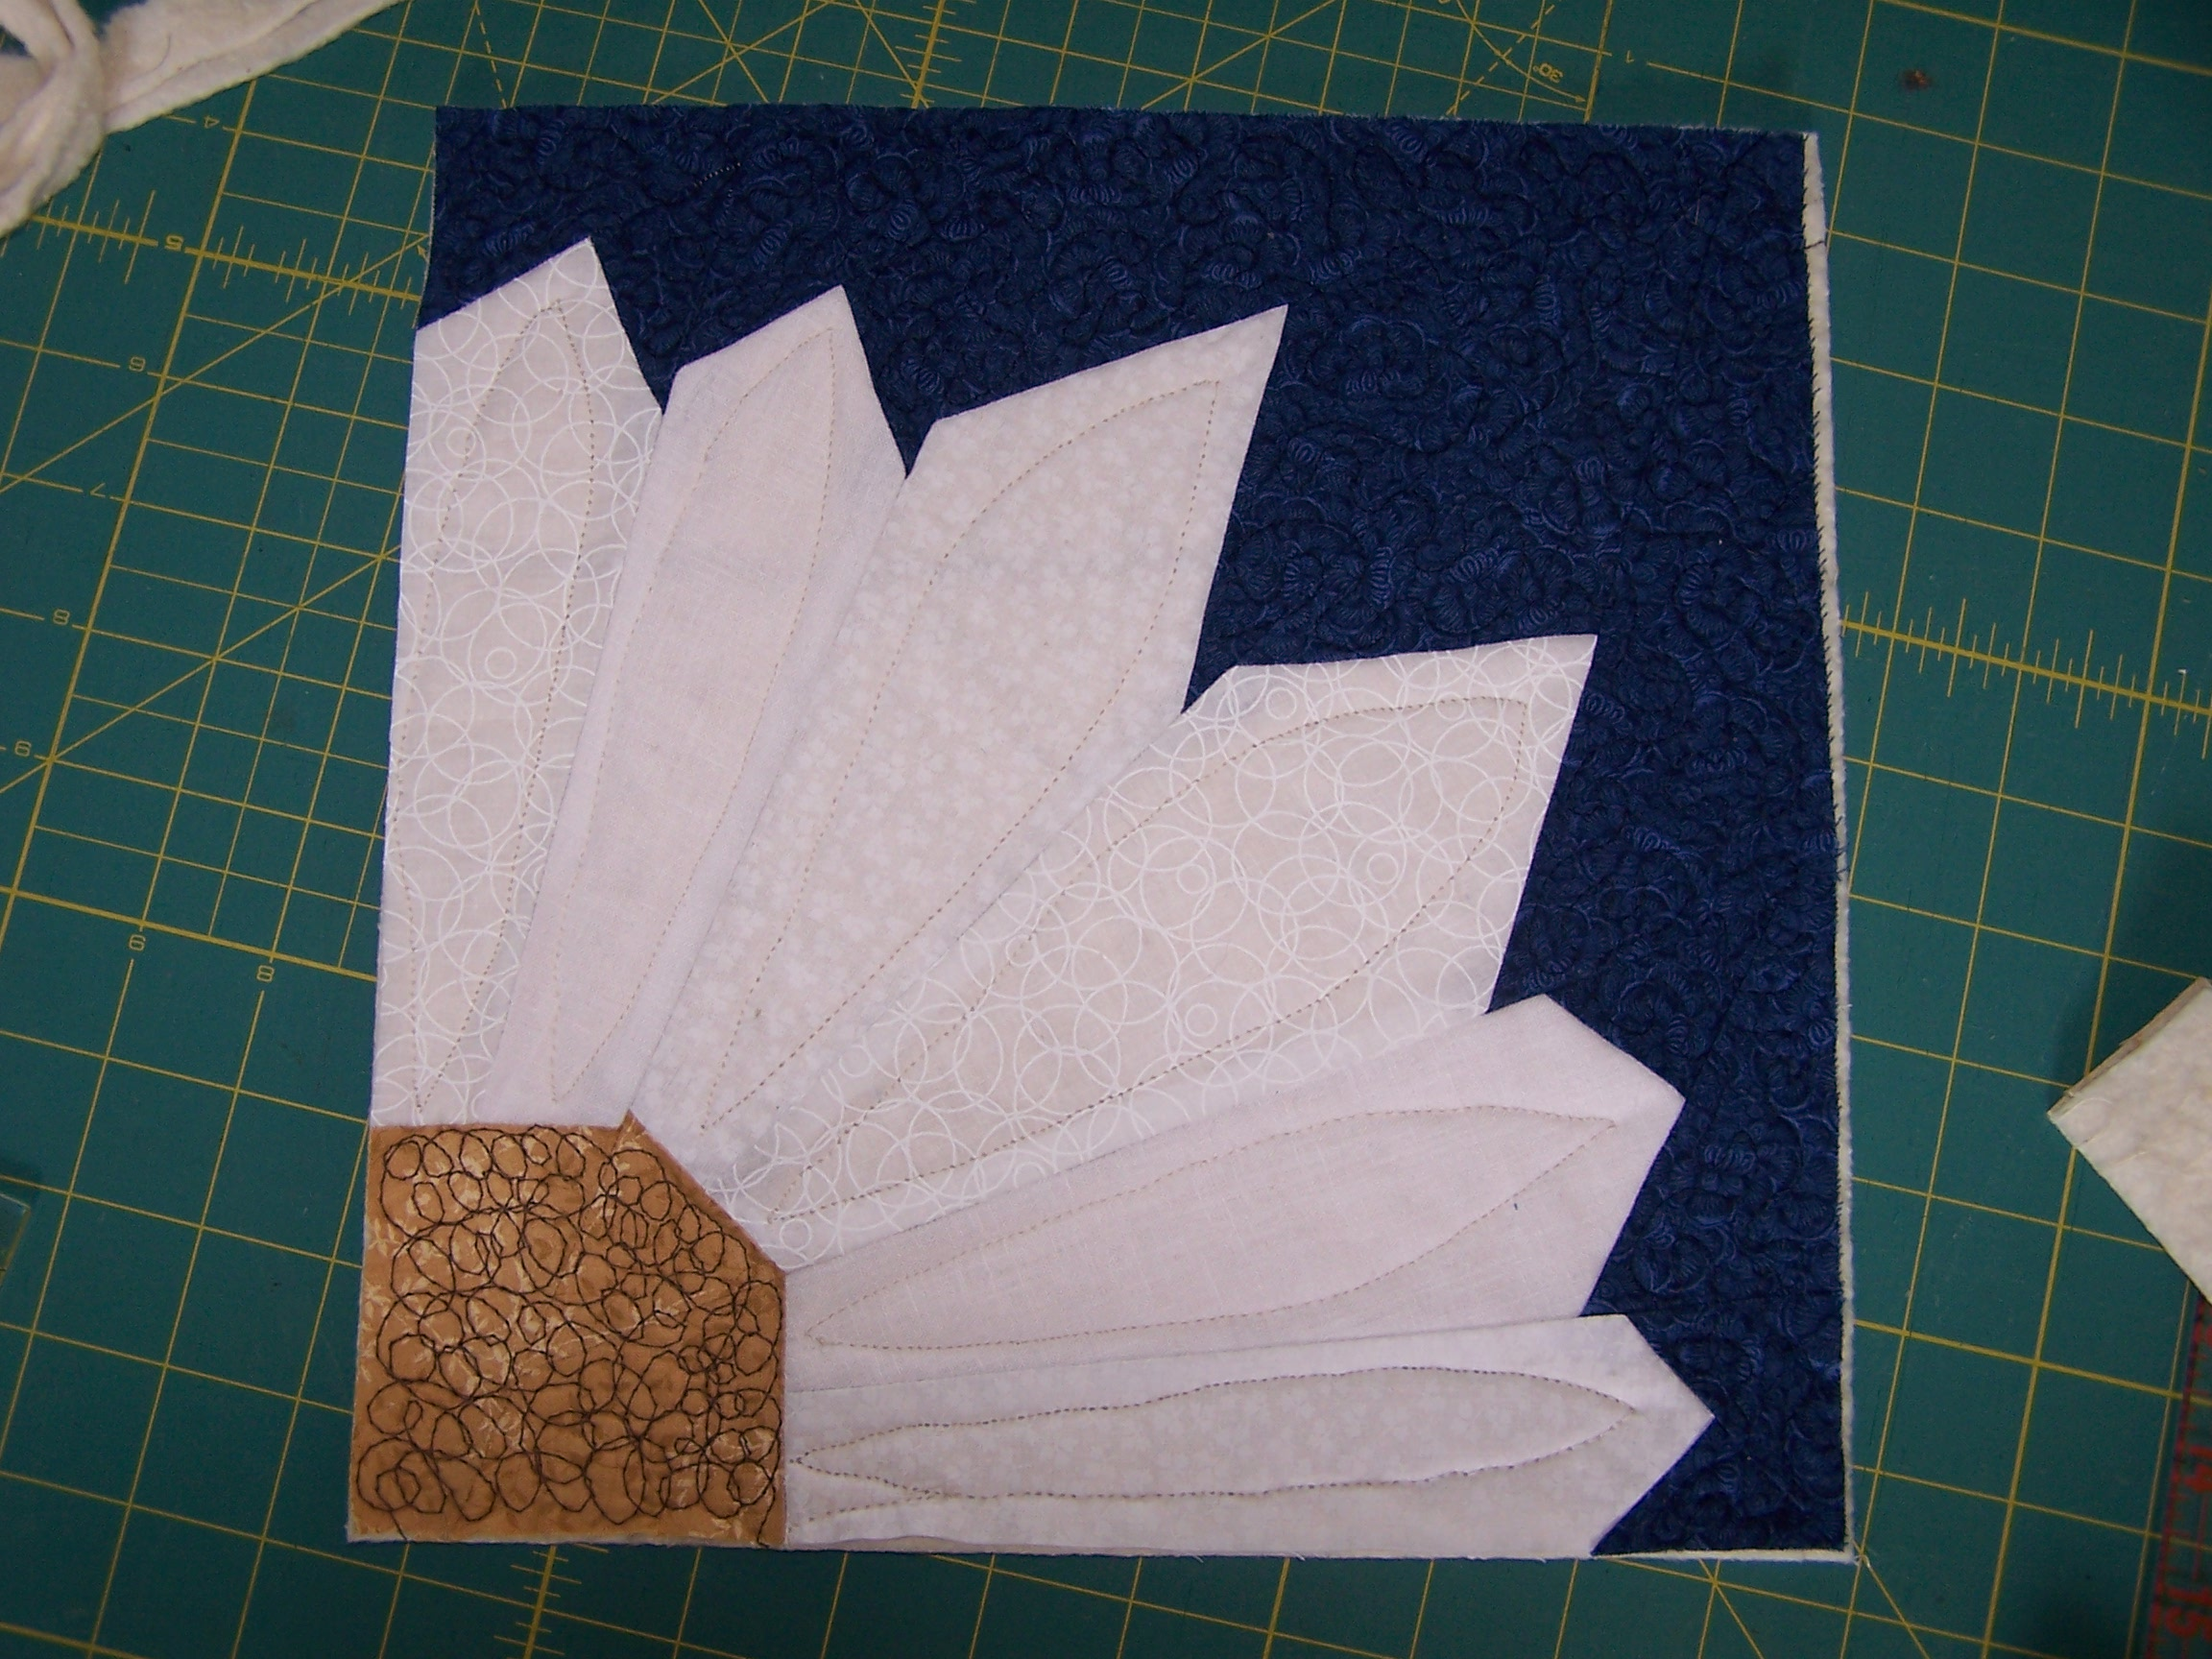 sewhooked blog hop    with free paper piece pattern